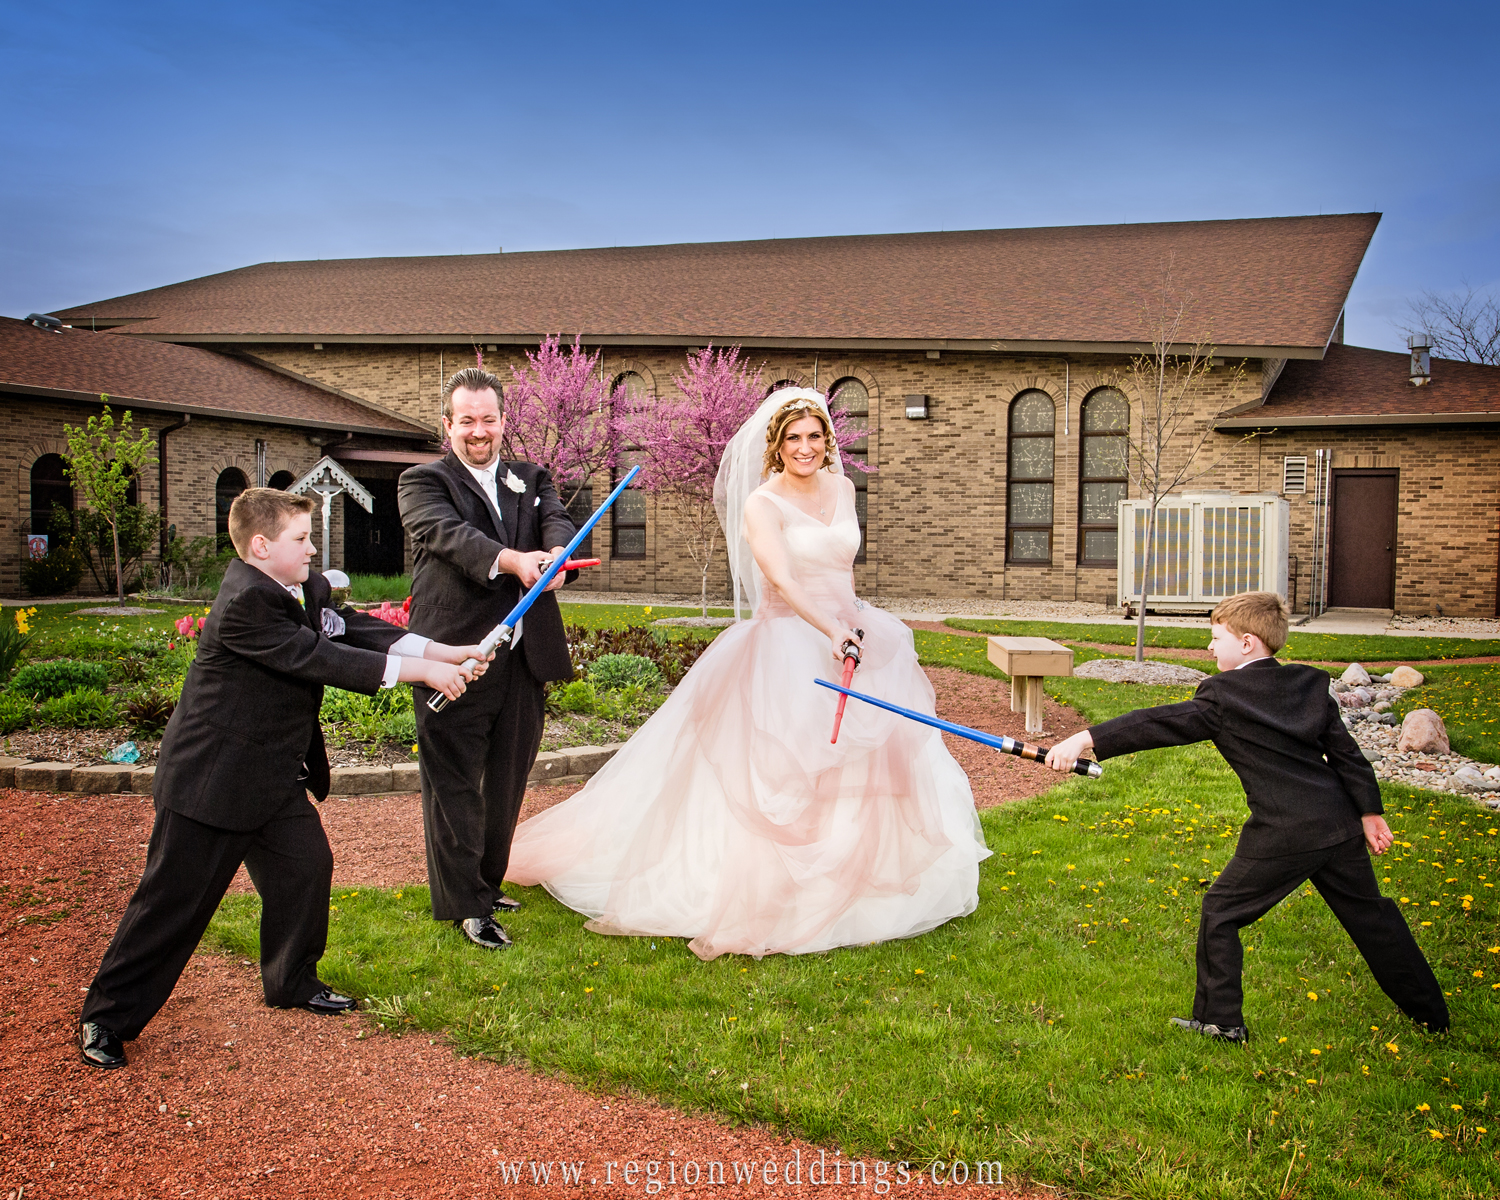 Star Wars themed wedding photo with family showing off their light sabers.